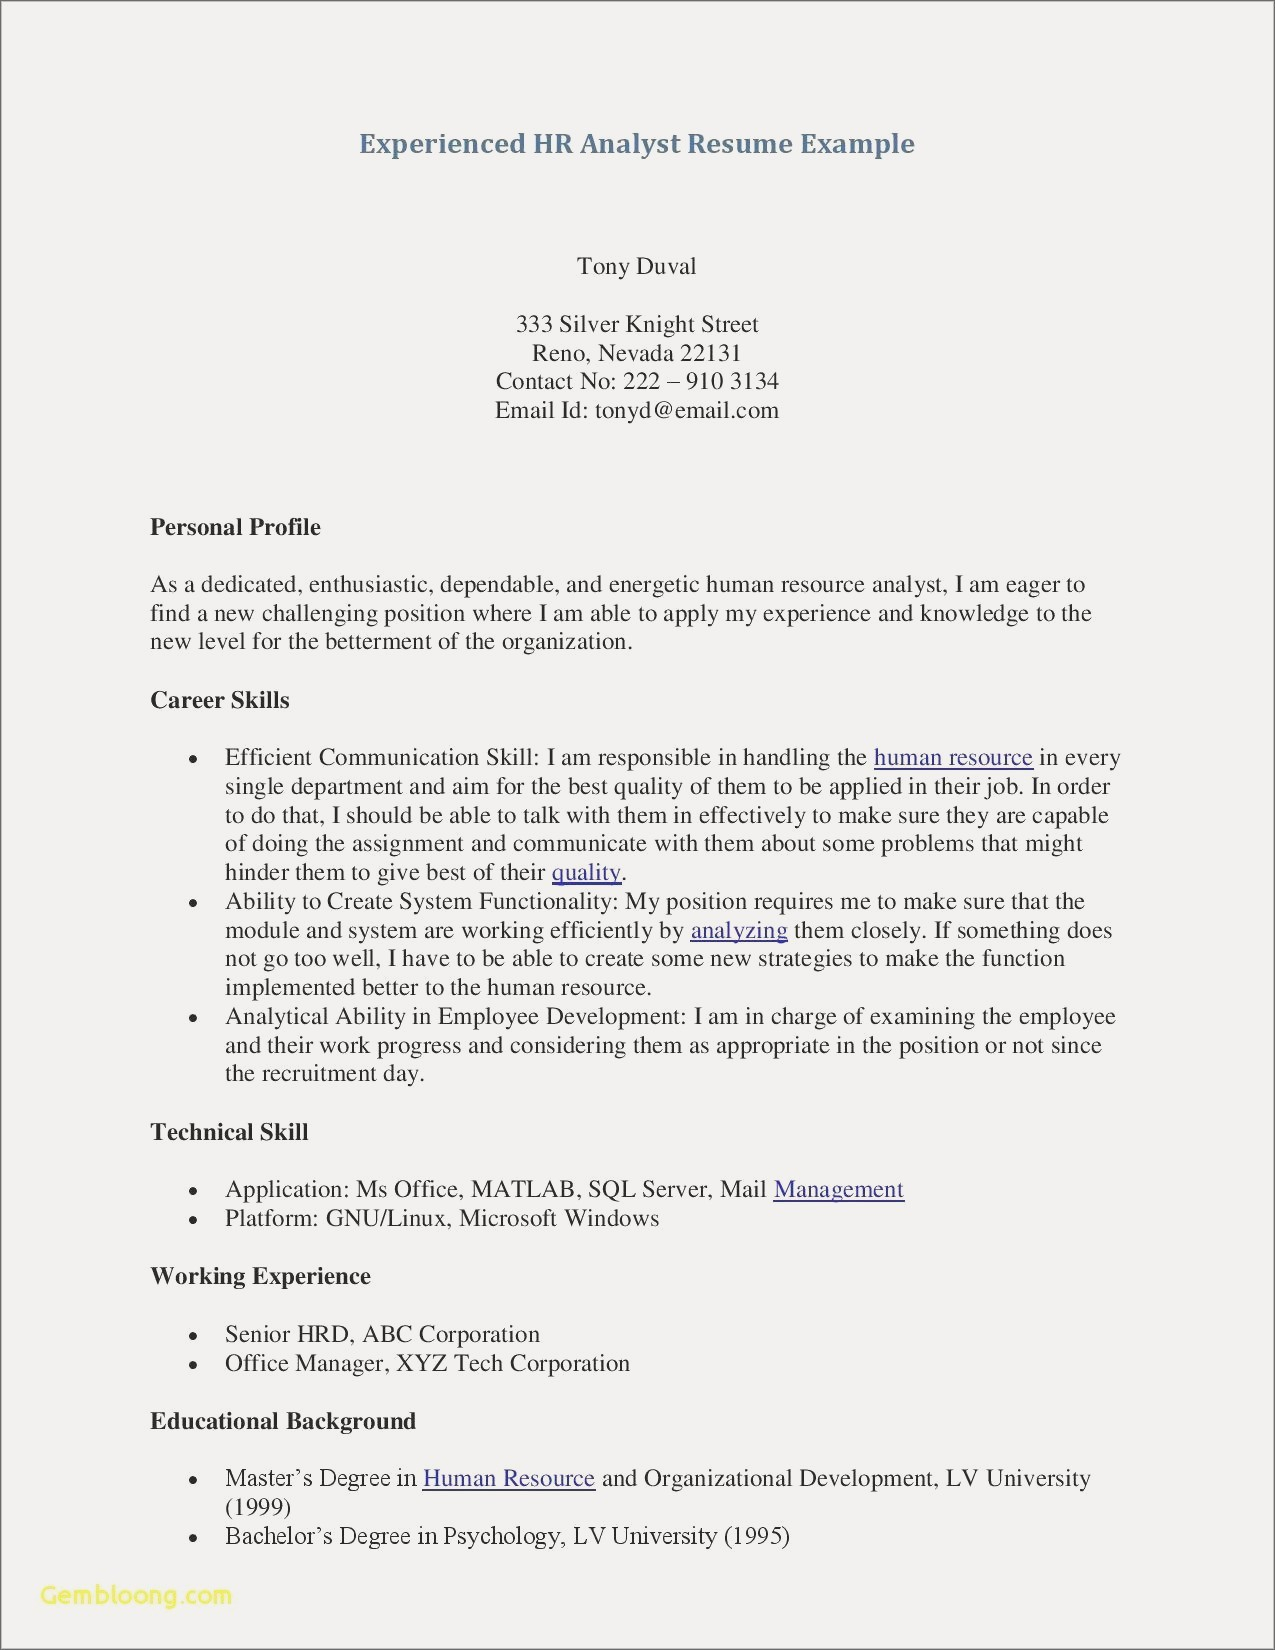 Director Level Resume - Sample Library Director Resume New Awesome Free Professional Resume